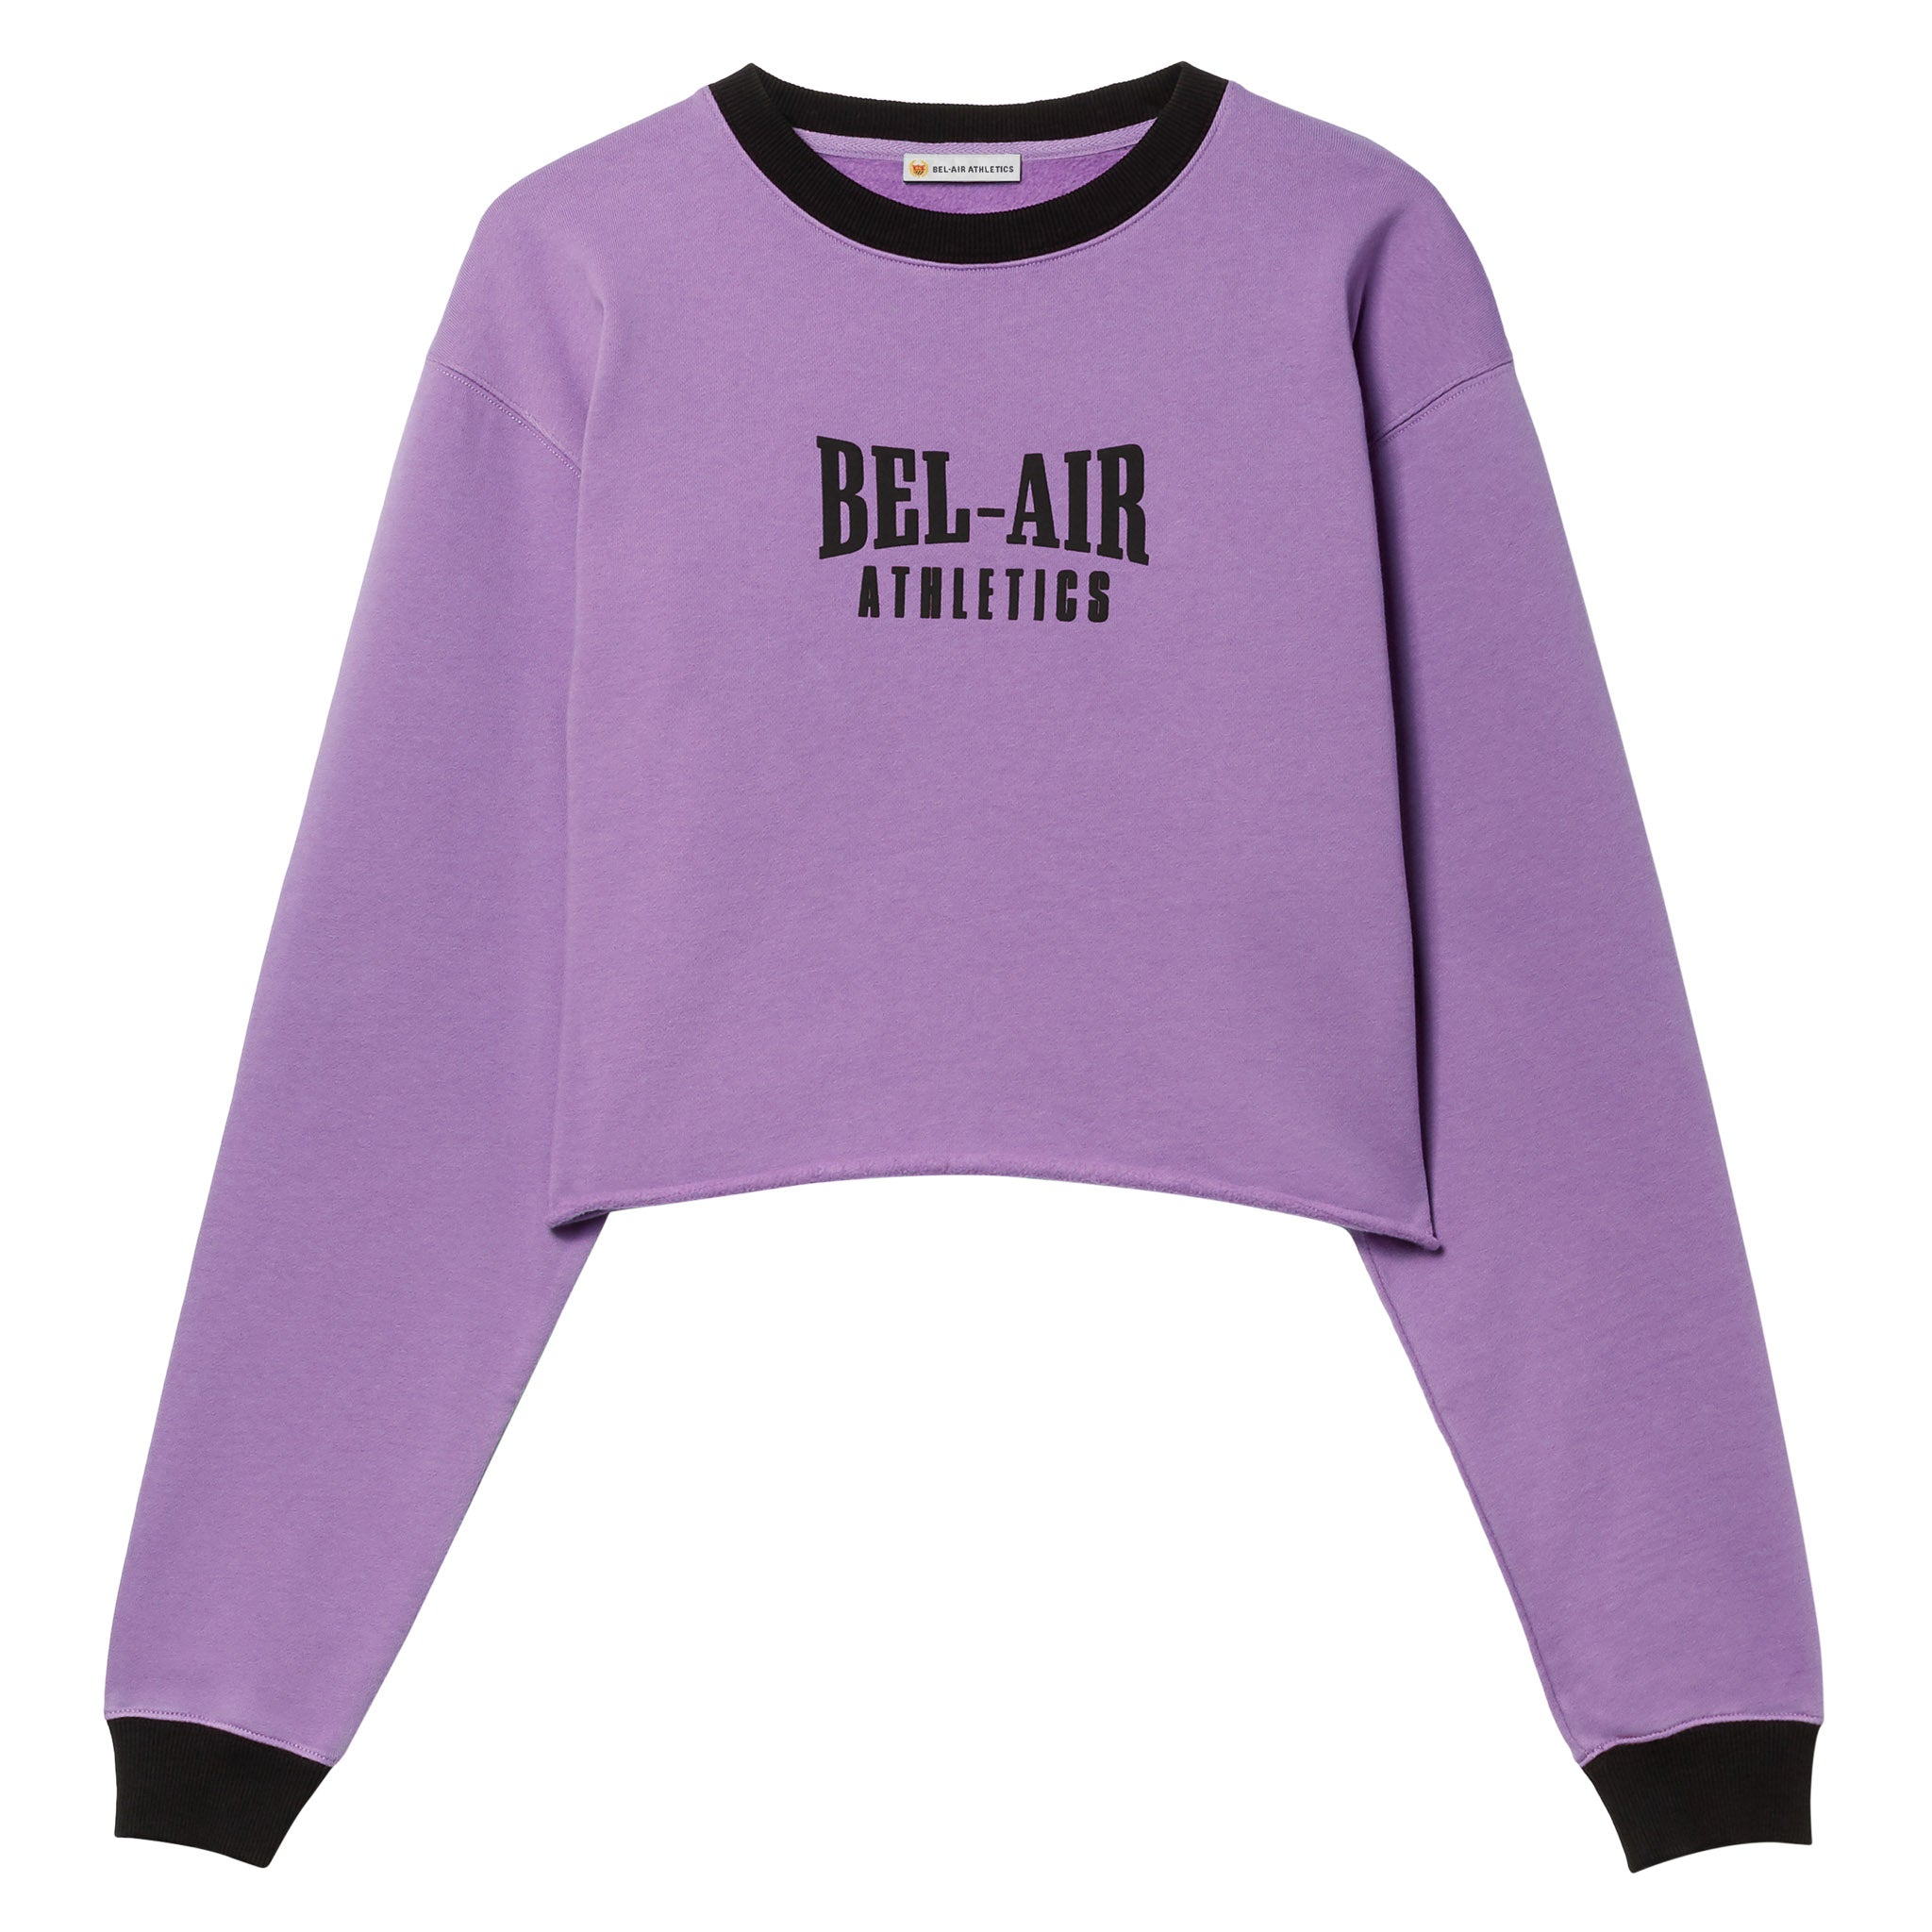 Puff logo cropped crew - Colorblock Sorority Pink/Vintage Black